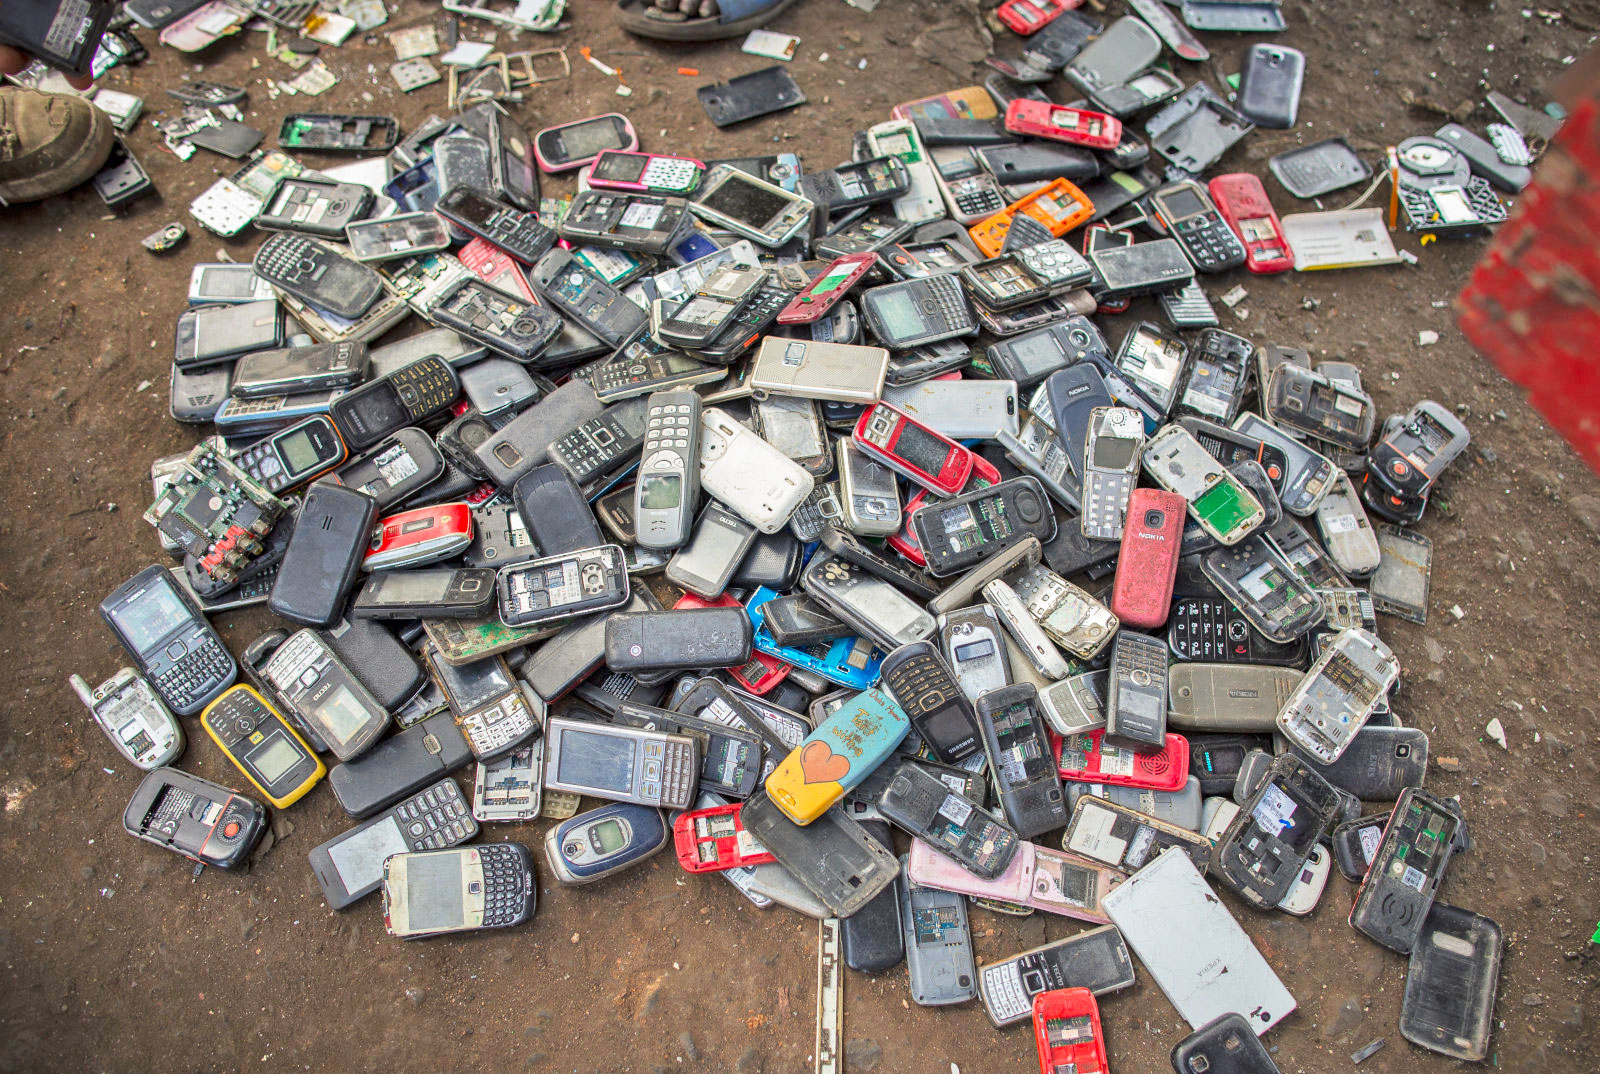 Greenpeace and iFixit slam smartphone companies over e-waste